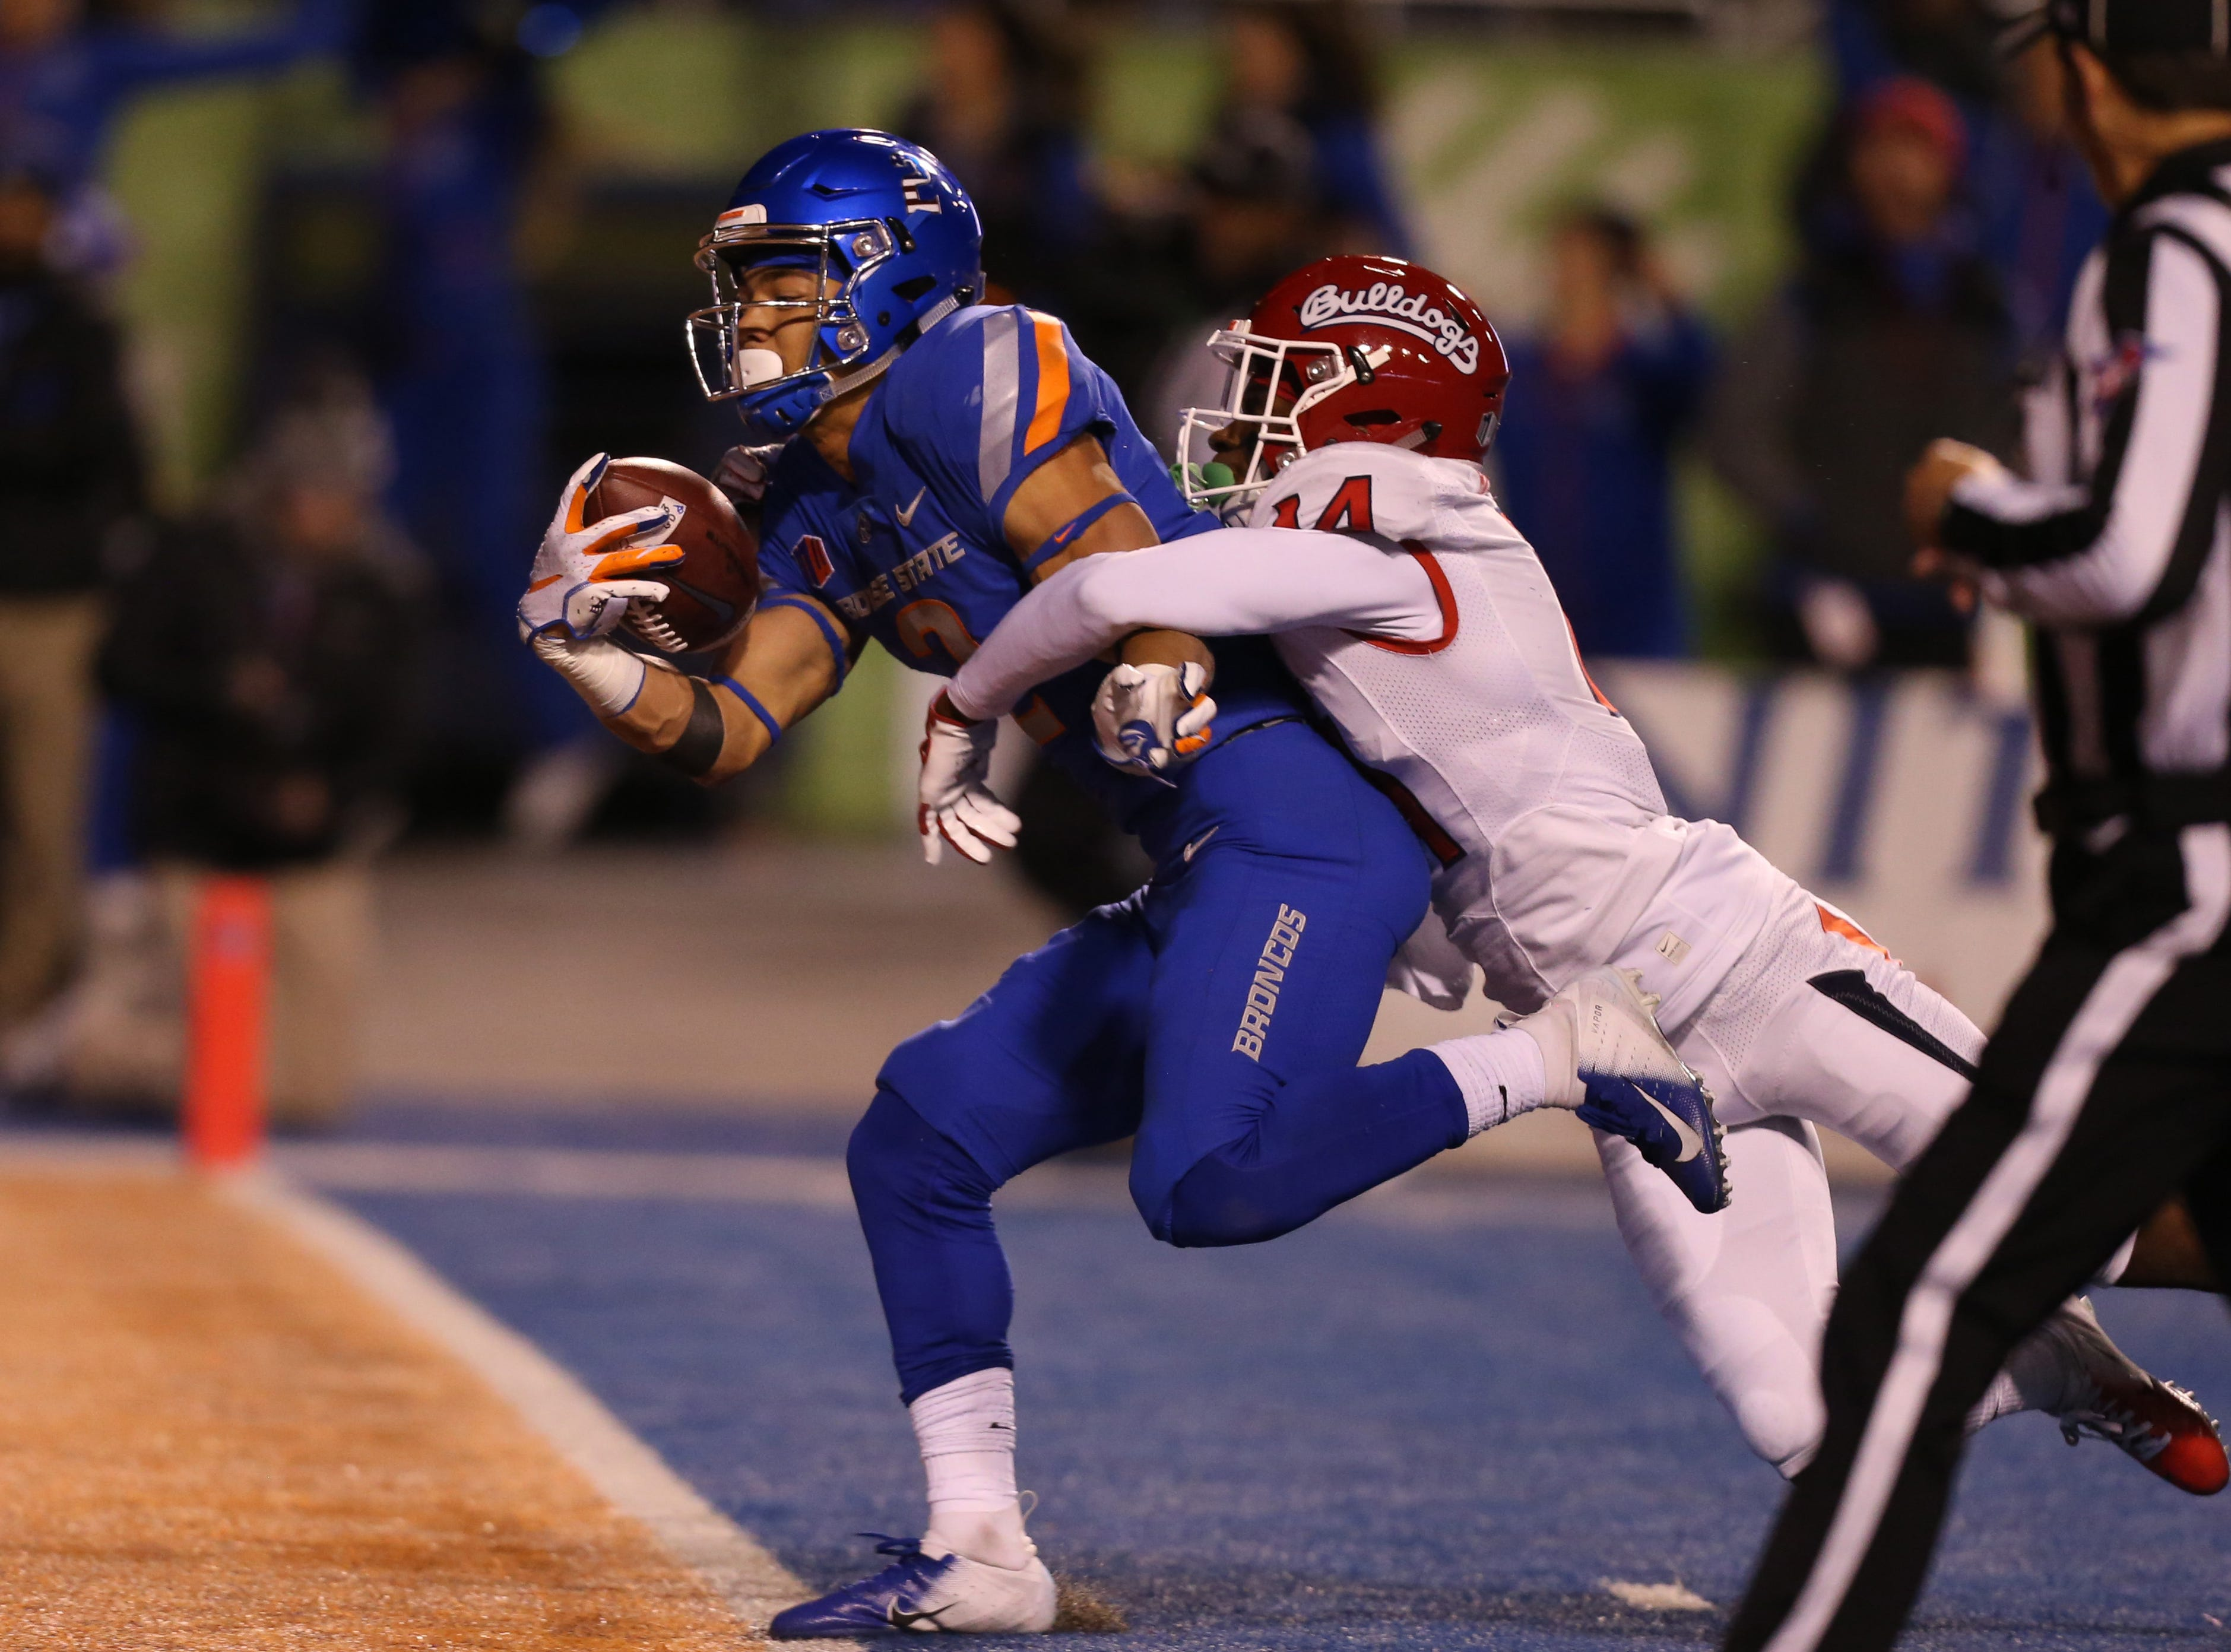 Boise State Broncos wide receiver Khalil Shakir (2) hauls in a 49-yard touchdown pass during the second half of play against the Fresno State Bulldogs at Albertsons Stadium.